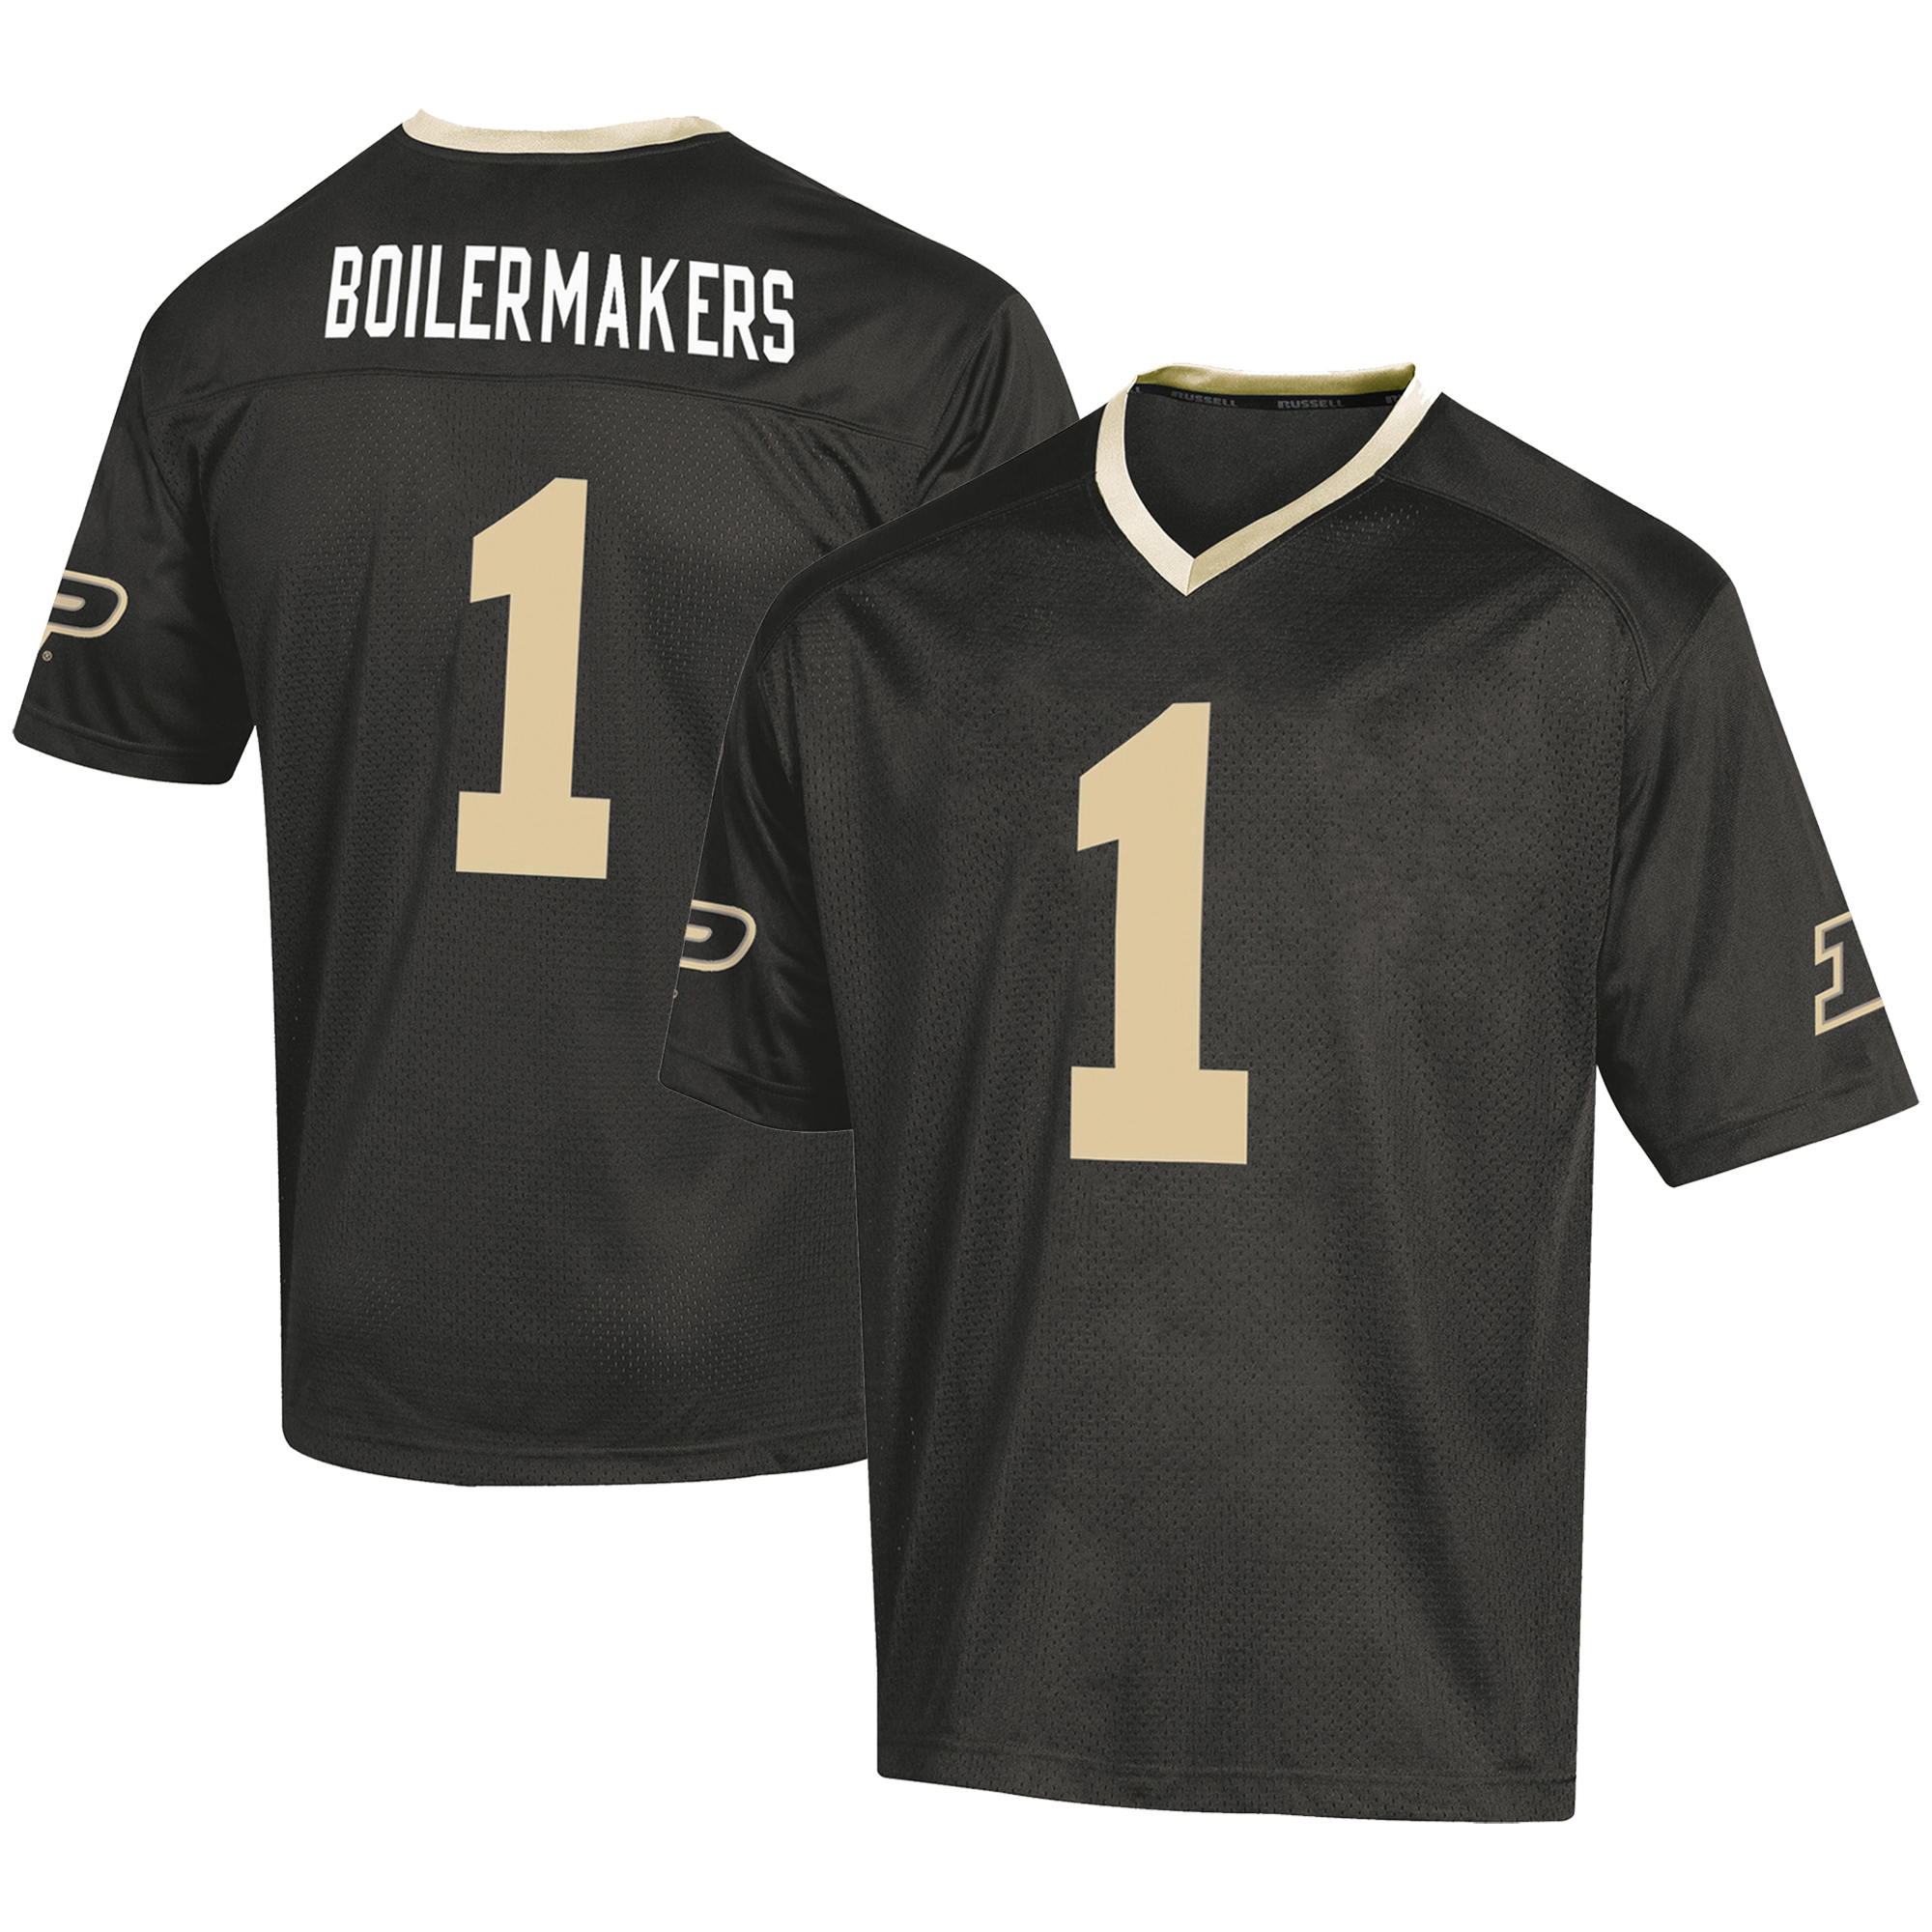 Men's Russell #1 Black Purdue Boilermakers Fashion Football Jersey